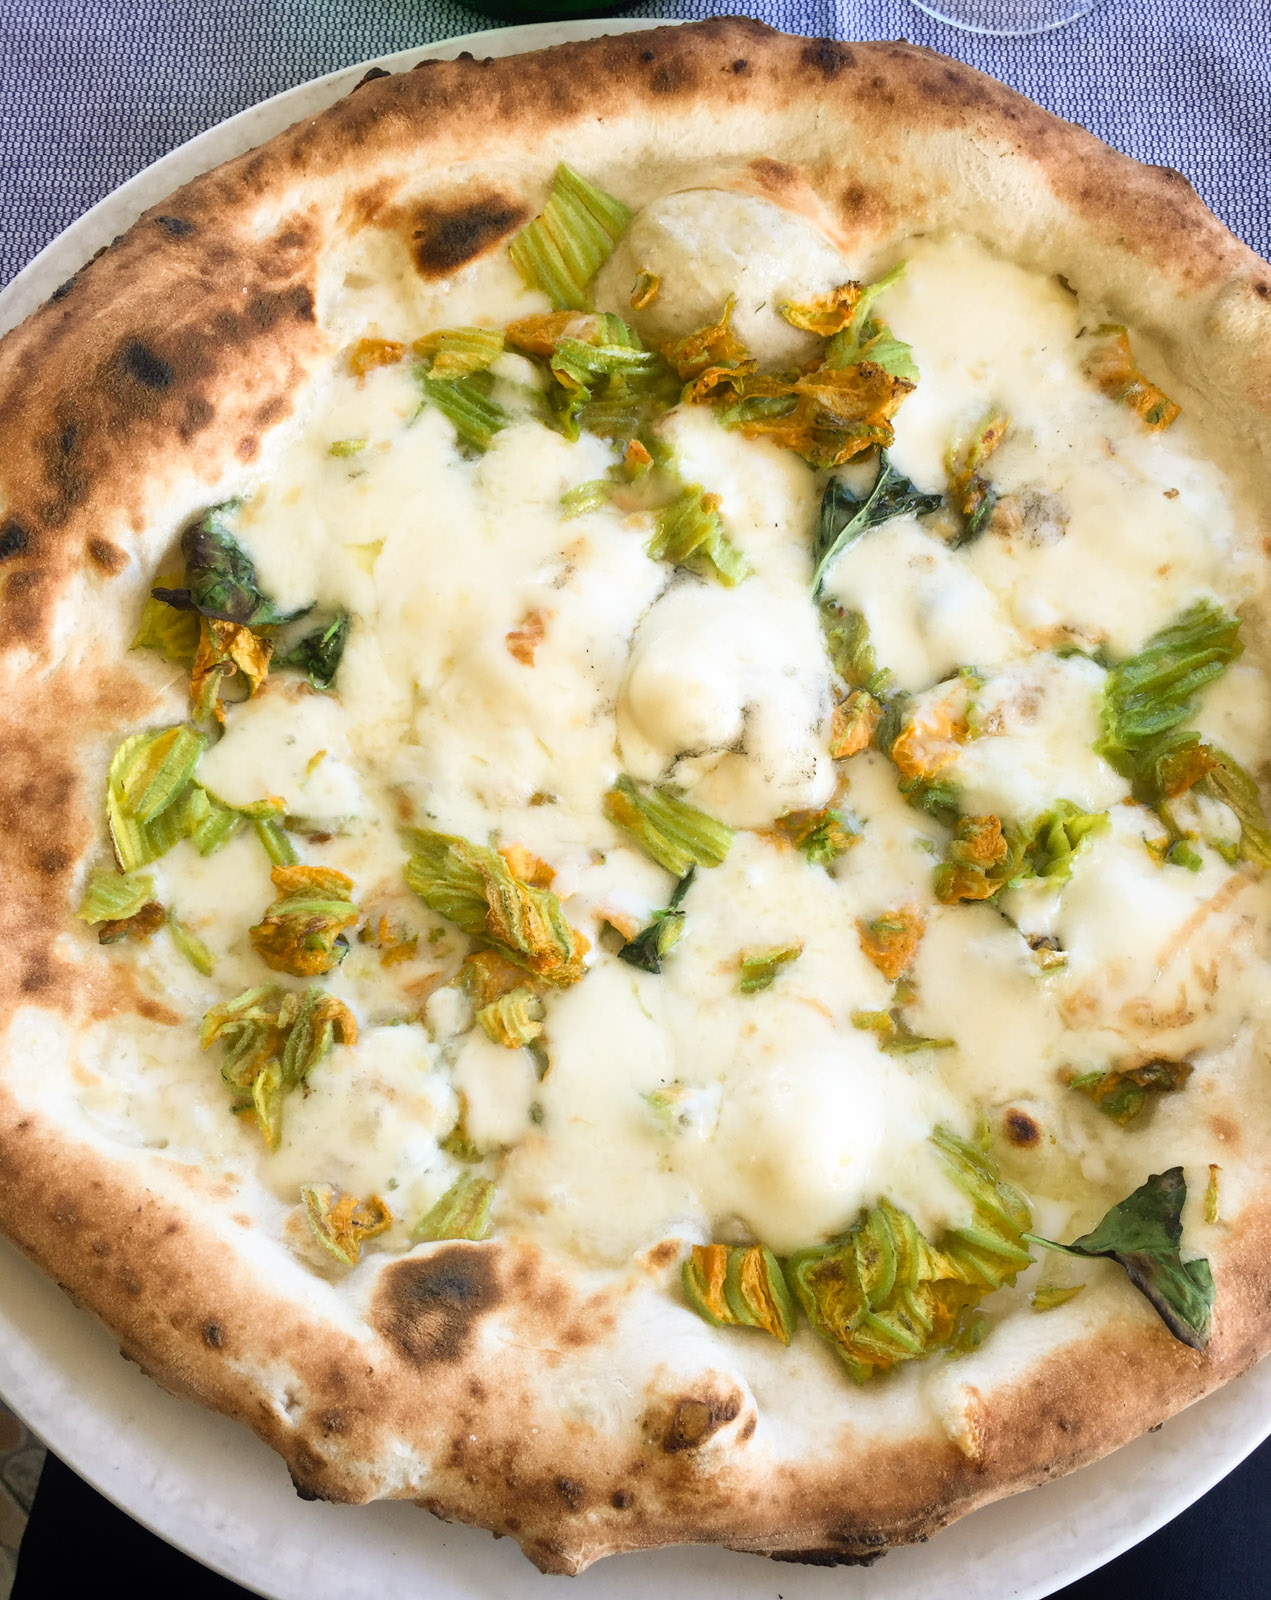 Pizza with courgette flowers at Reginella